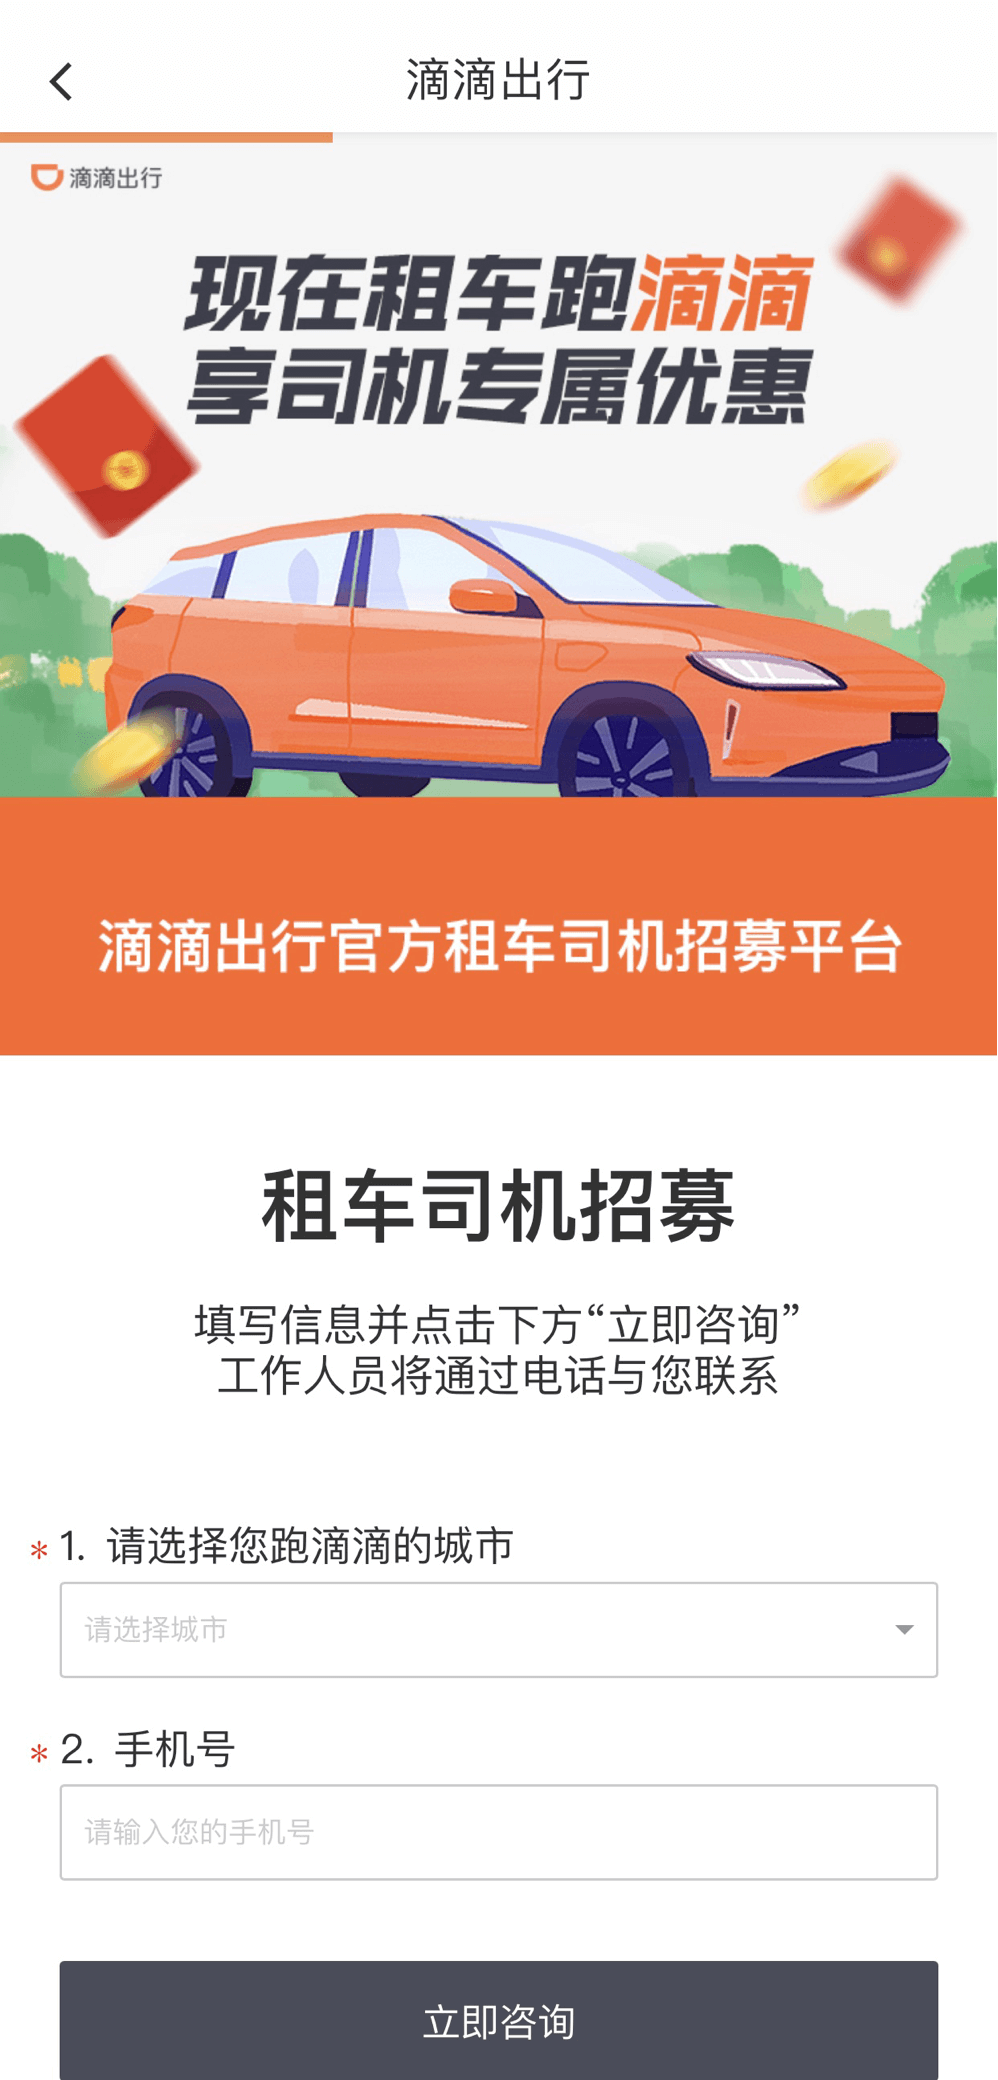 Screenshot from the Didi mobile app (text in Chinese translated in caption below)